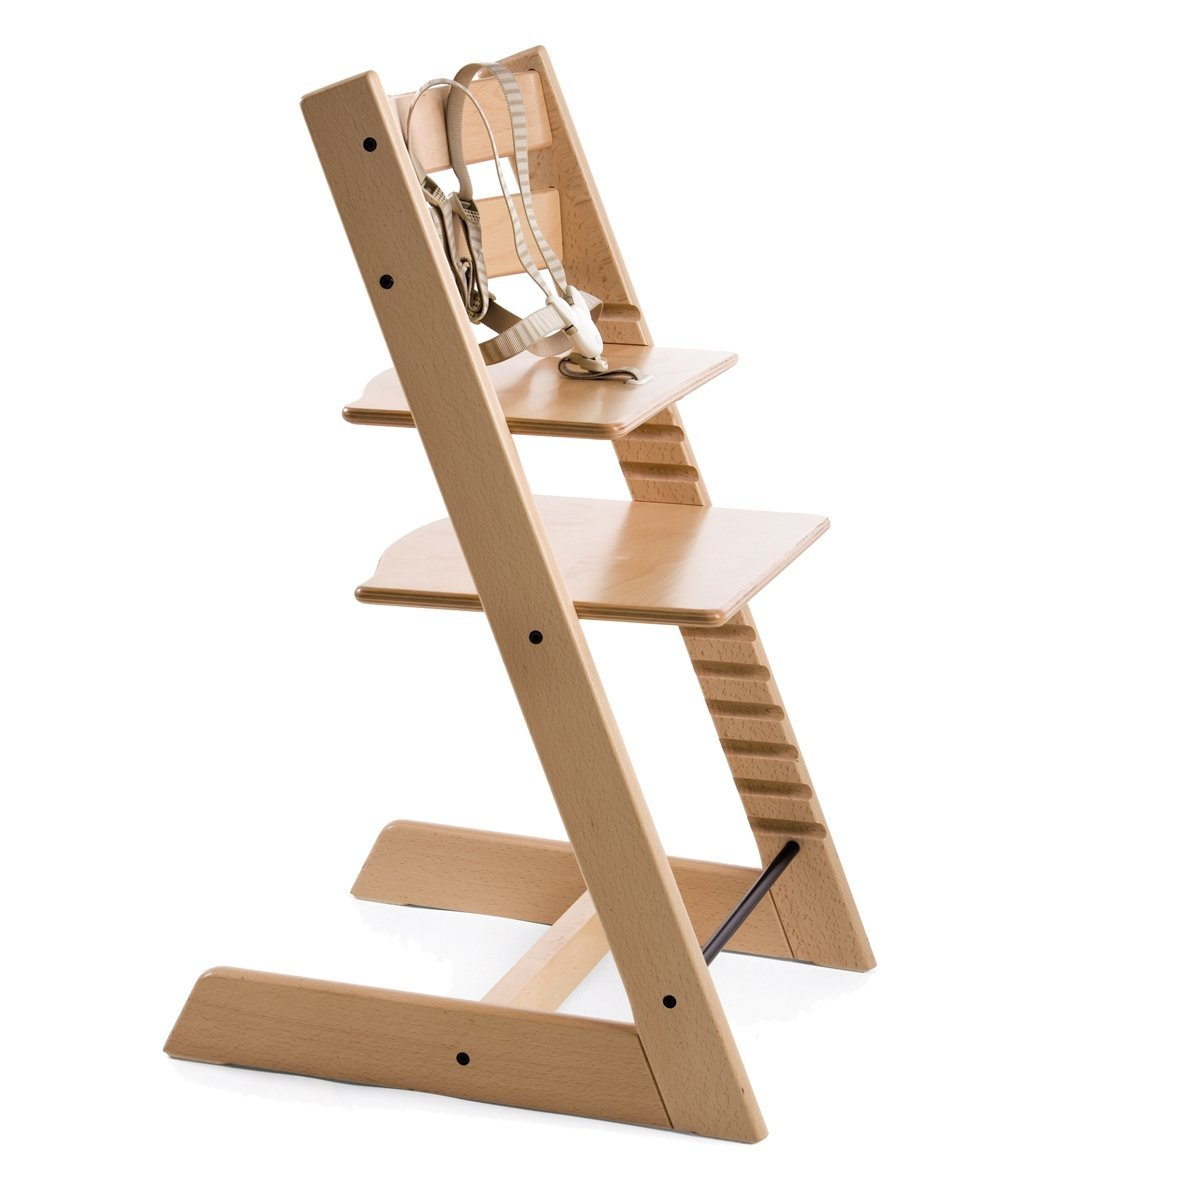 Stokke Tripp Trapp Highchair Baby Set Review